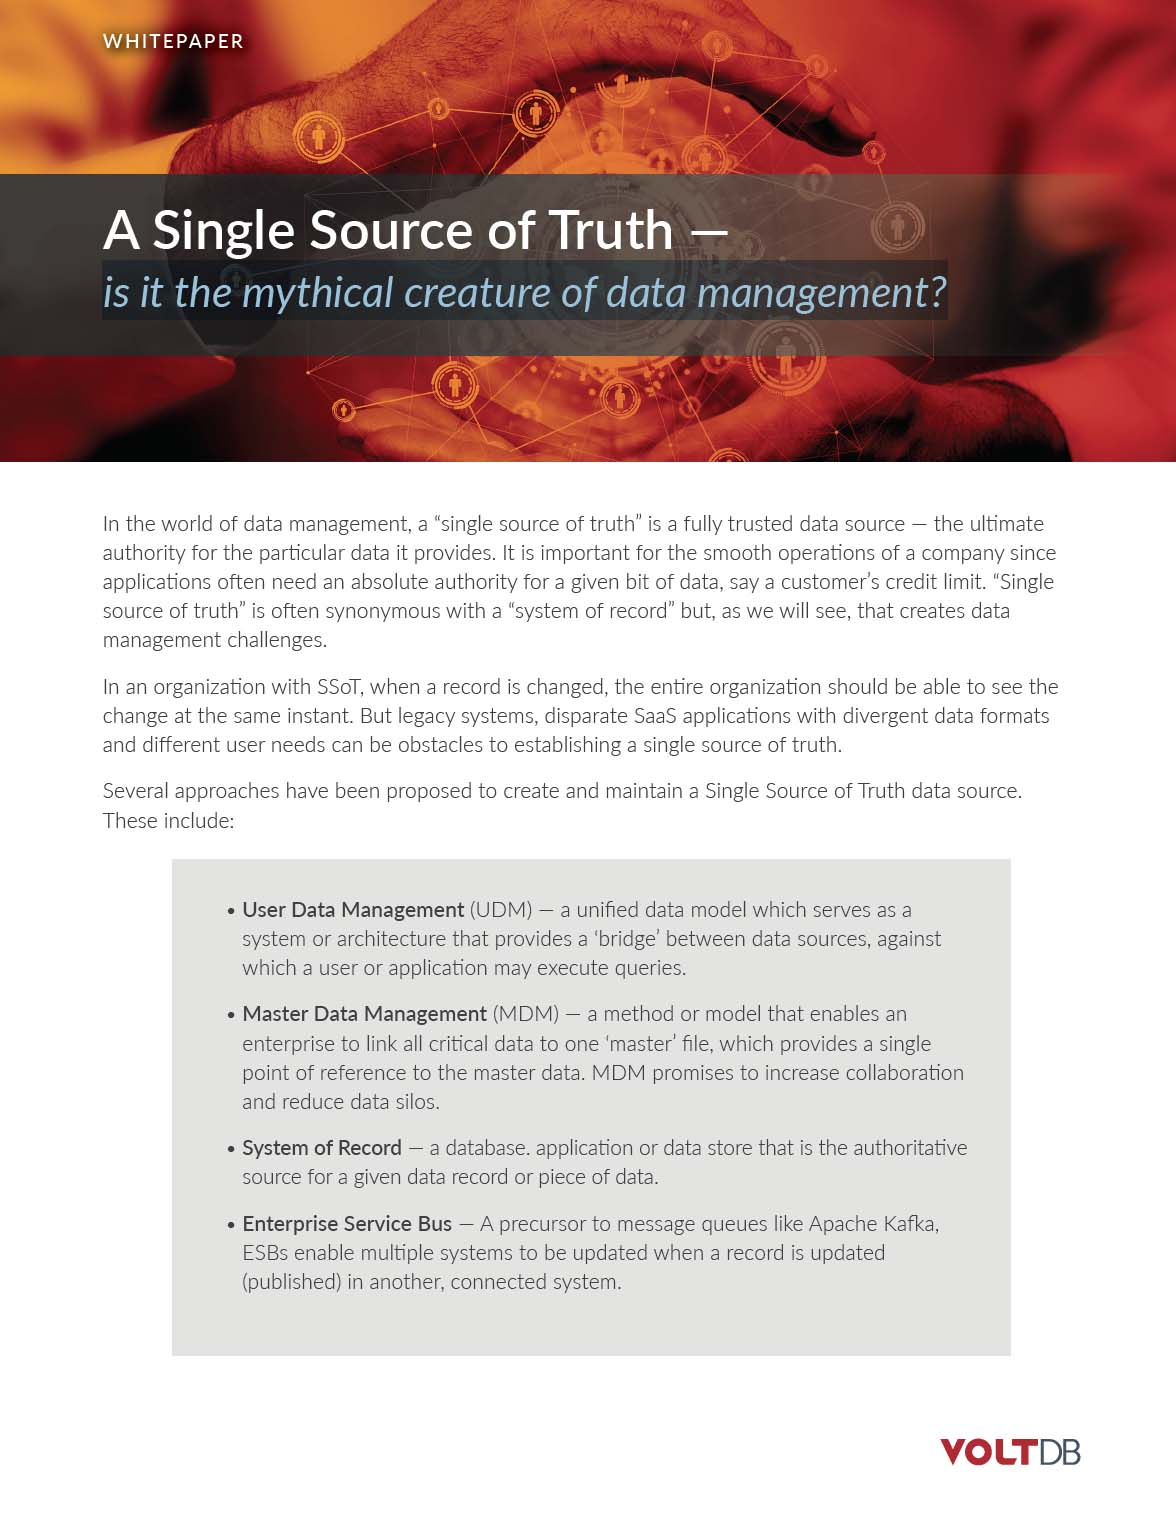 Several approaches have been proposed to create and maintain a Single Source of Truth data source.